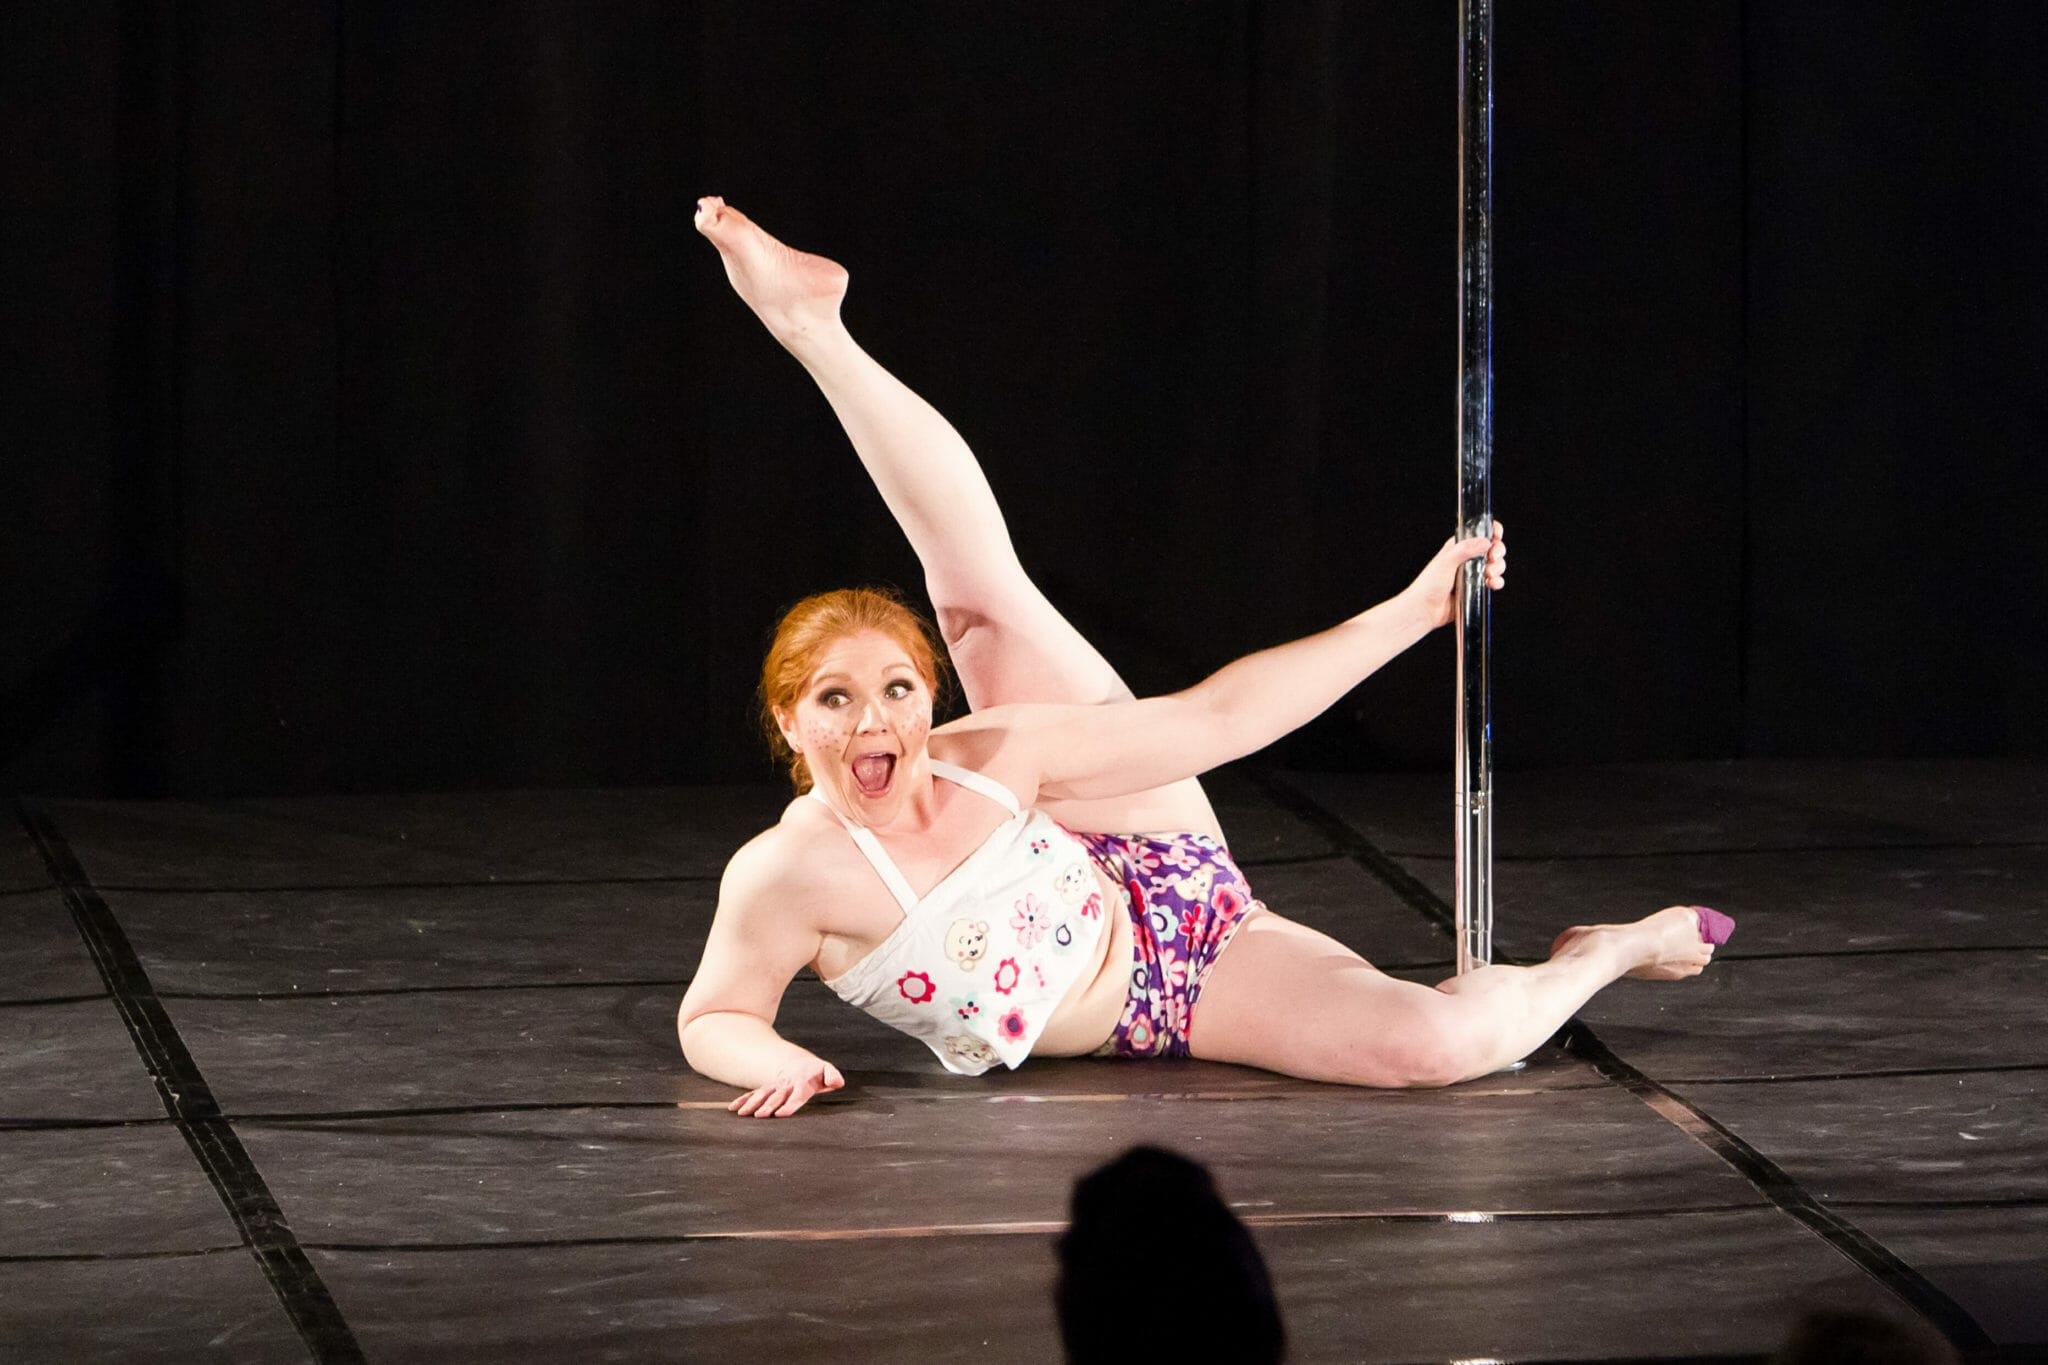 Competition Prep Or Moderation In A Time Of Pole-fection – Fact Or Fiction?